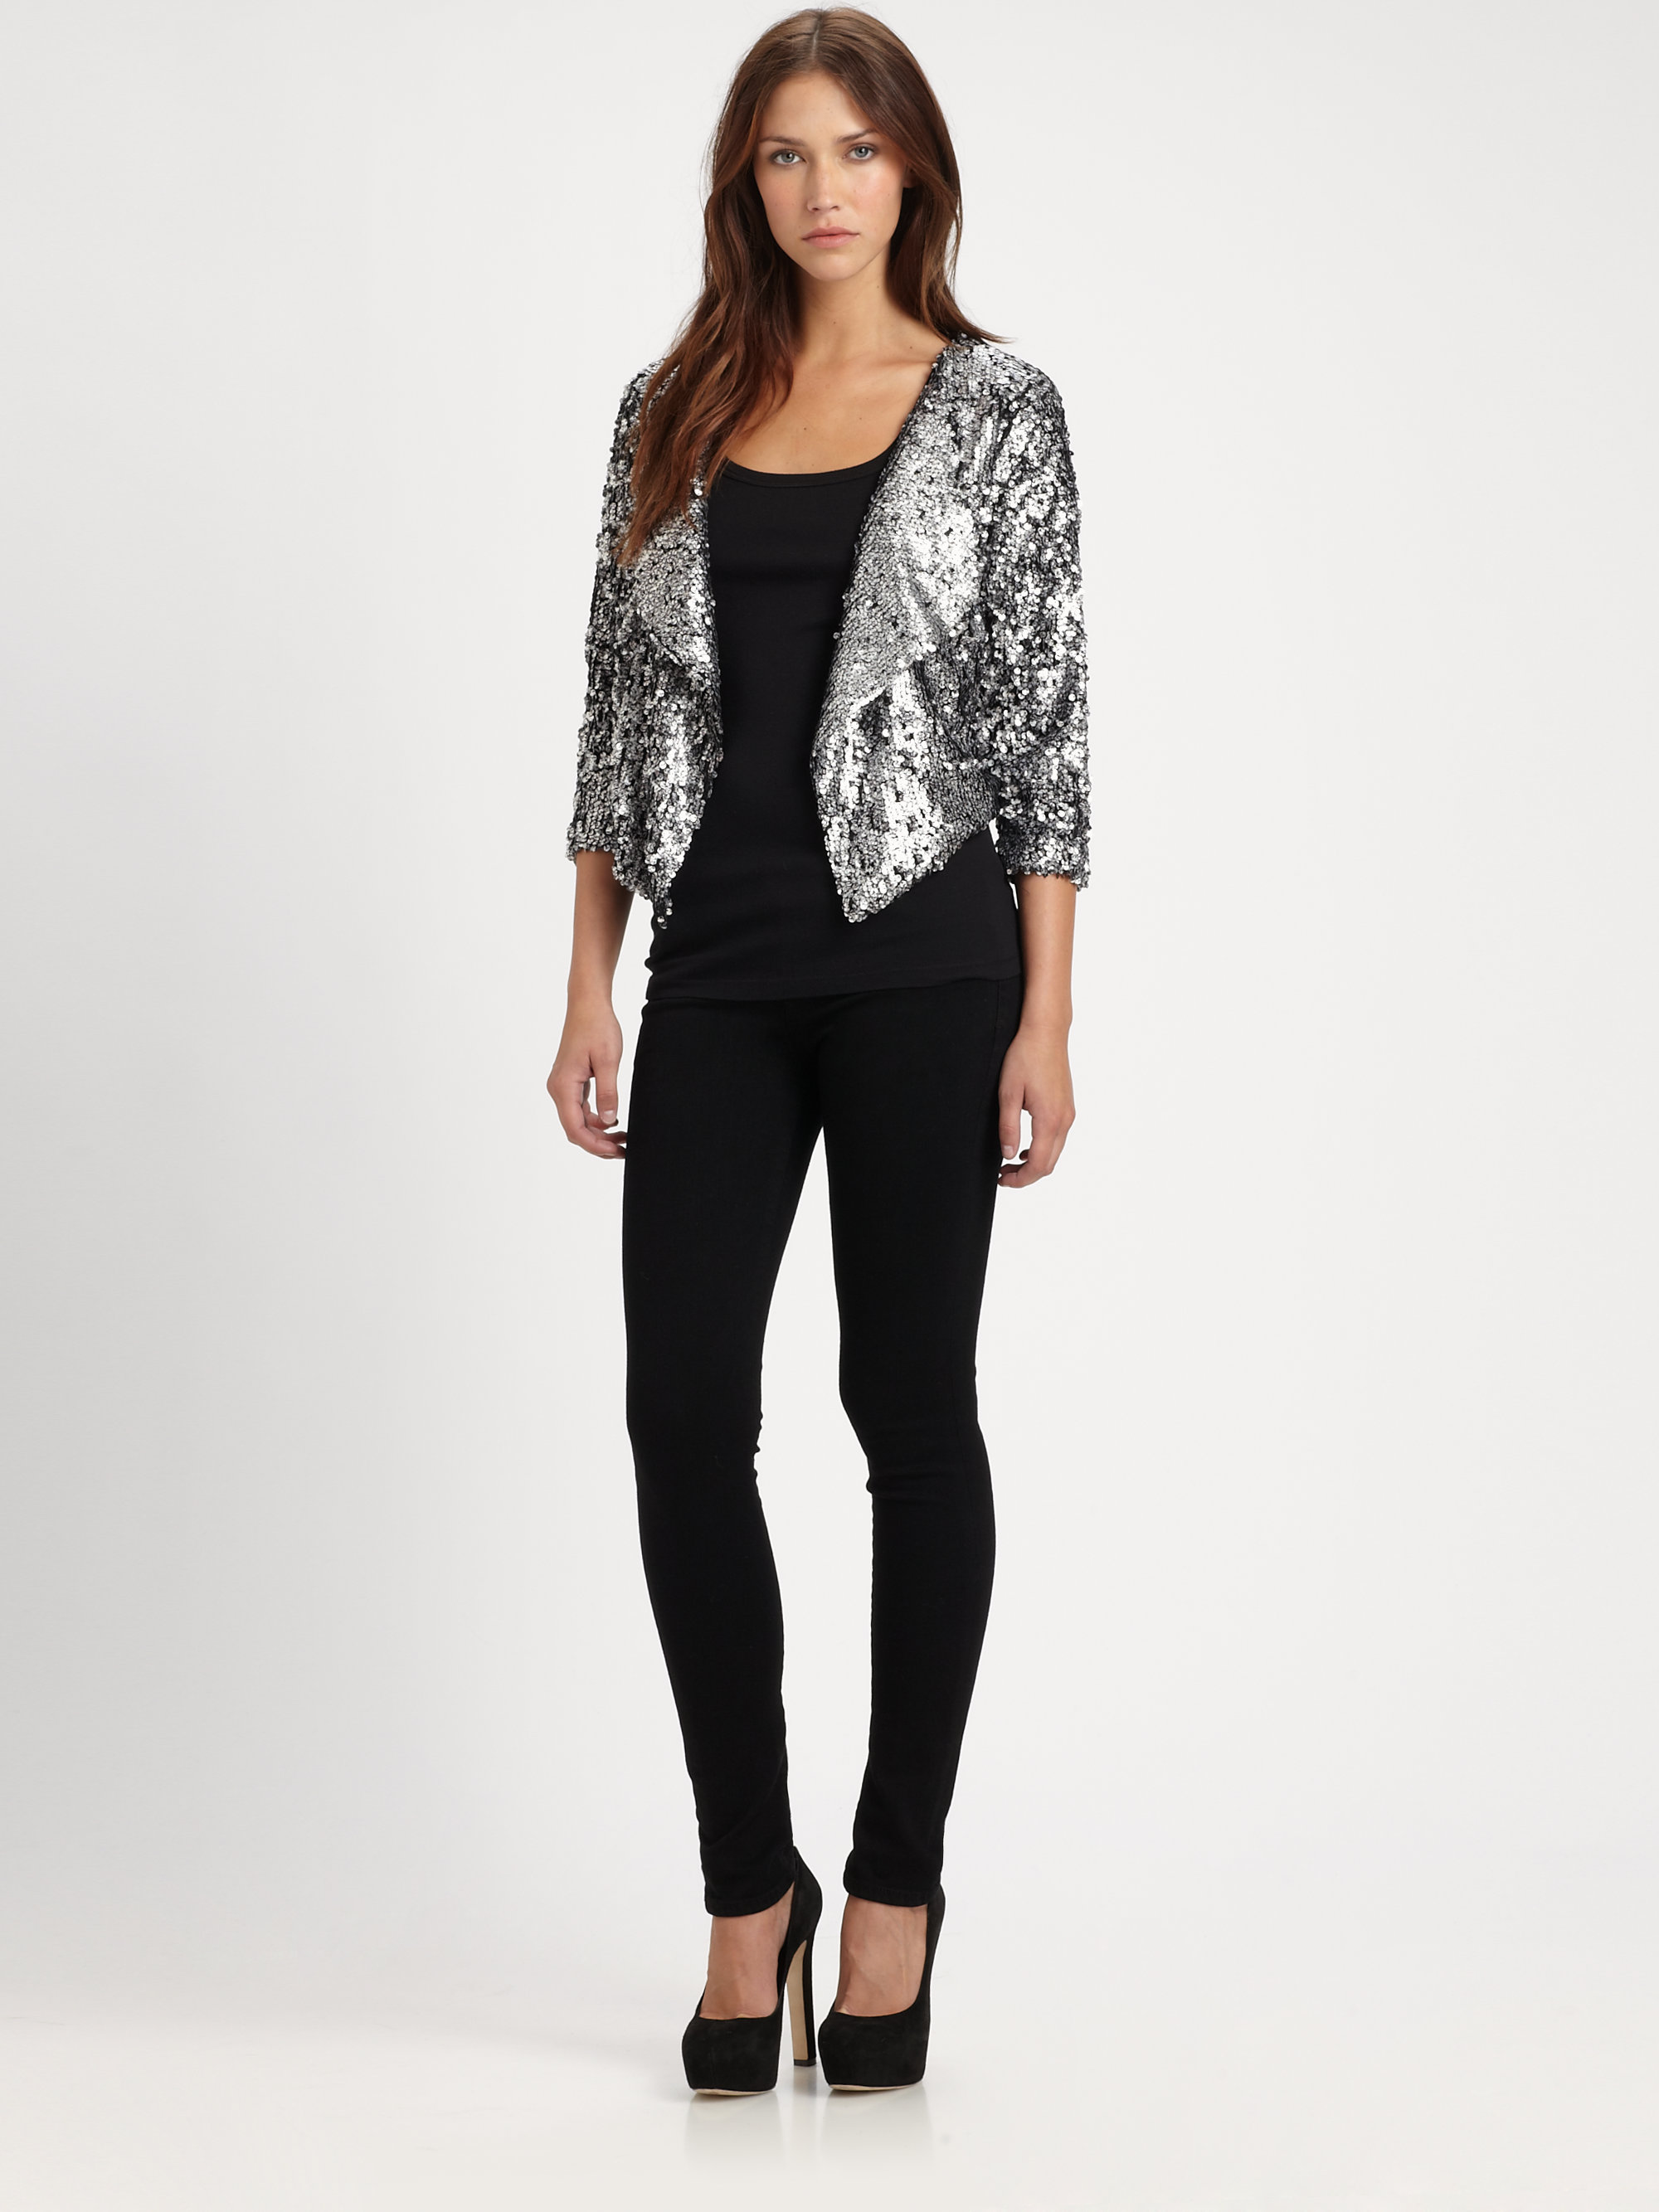 T-bags Cropped Sequin Jacket in Metallic | Lyst